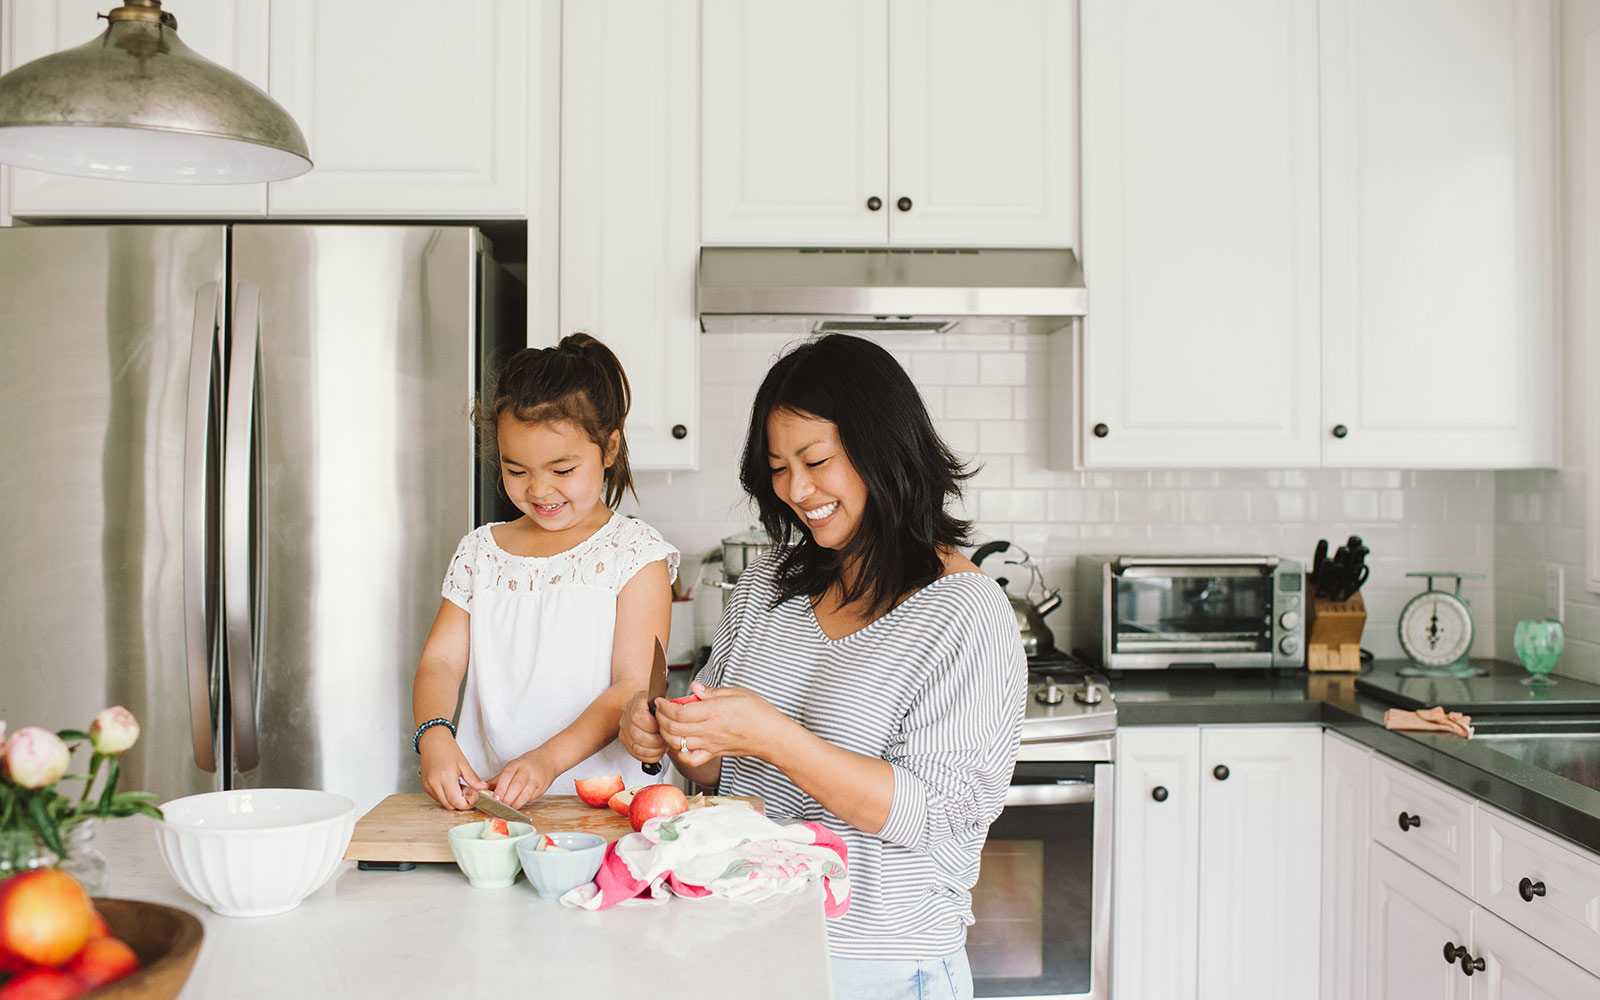 Mother and young daughter in the kitchen cooking together while smiling